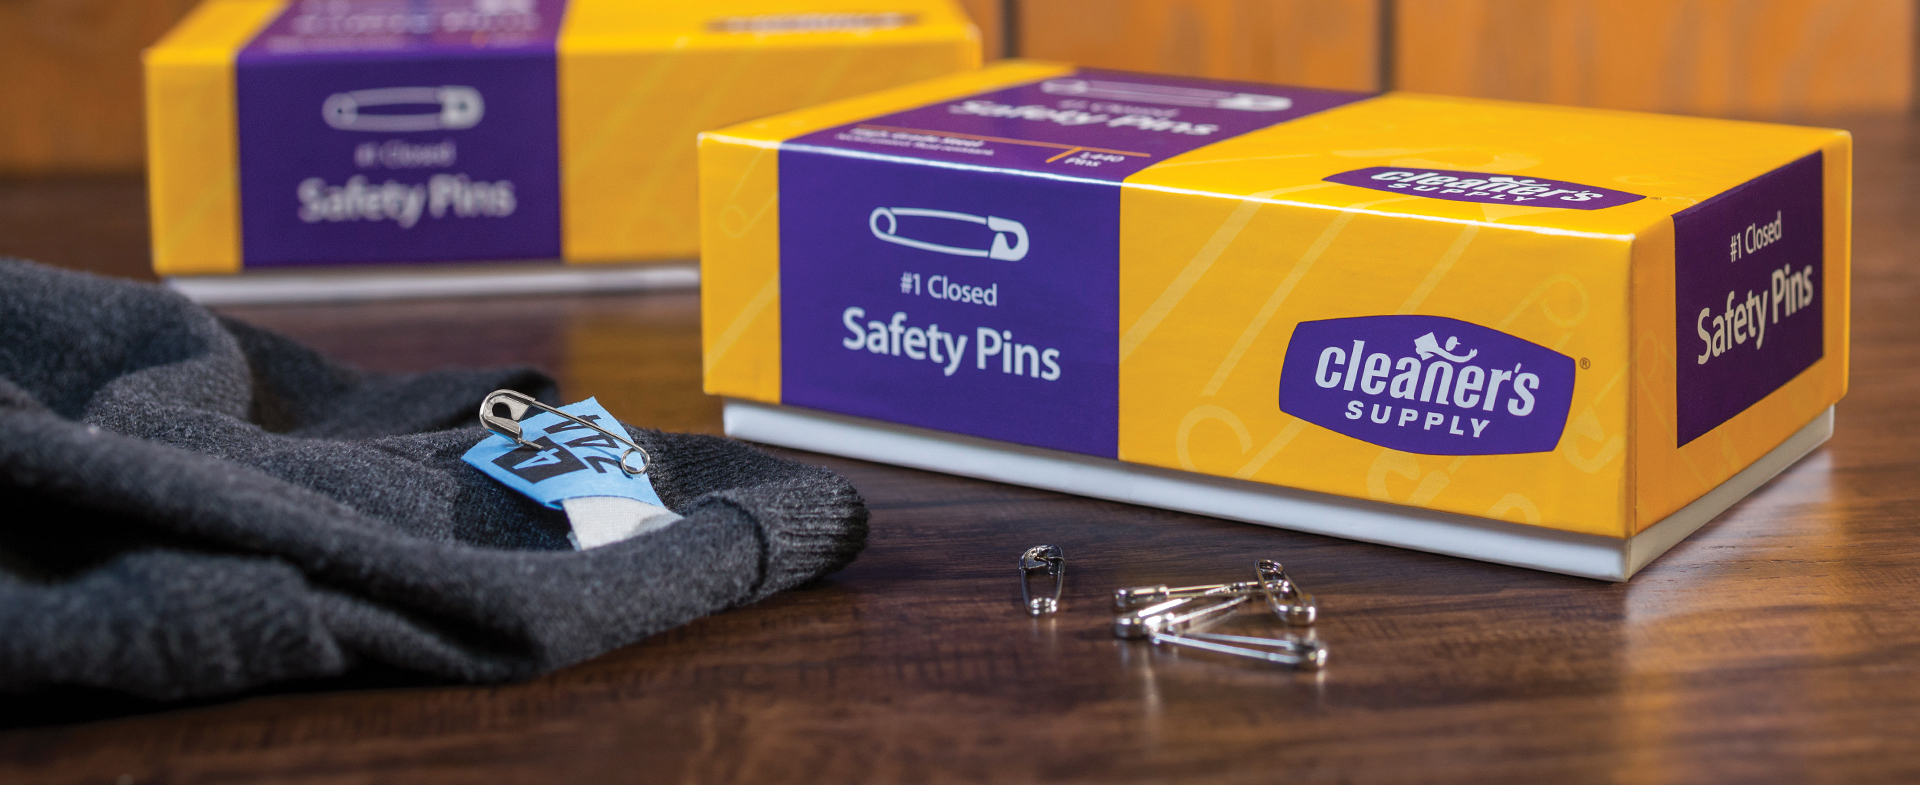 Cleaner's Supply Safety Pins